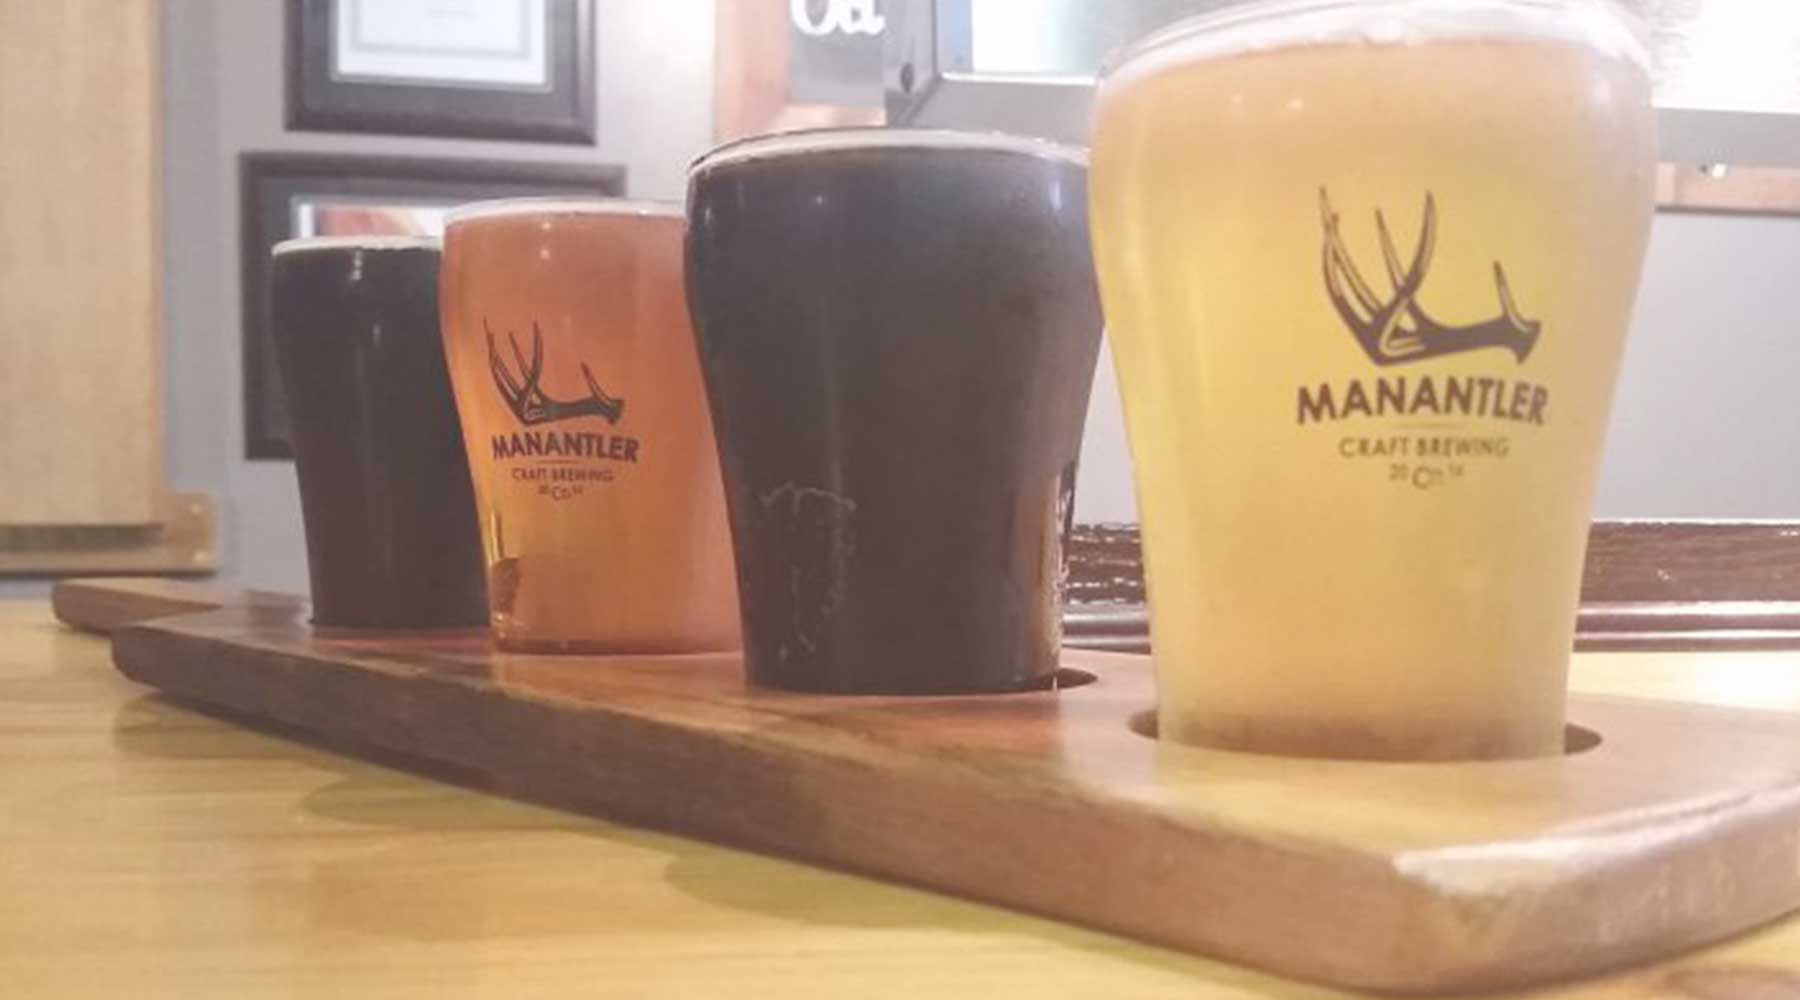 Manantler Craft Brewing Company | Just Wine